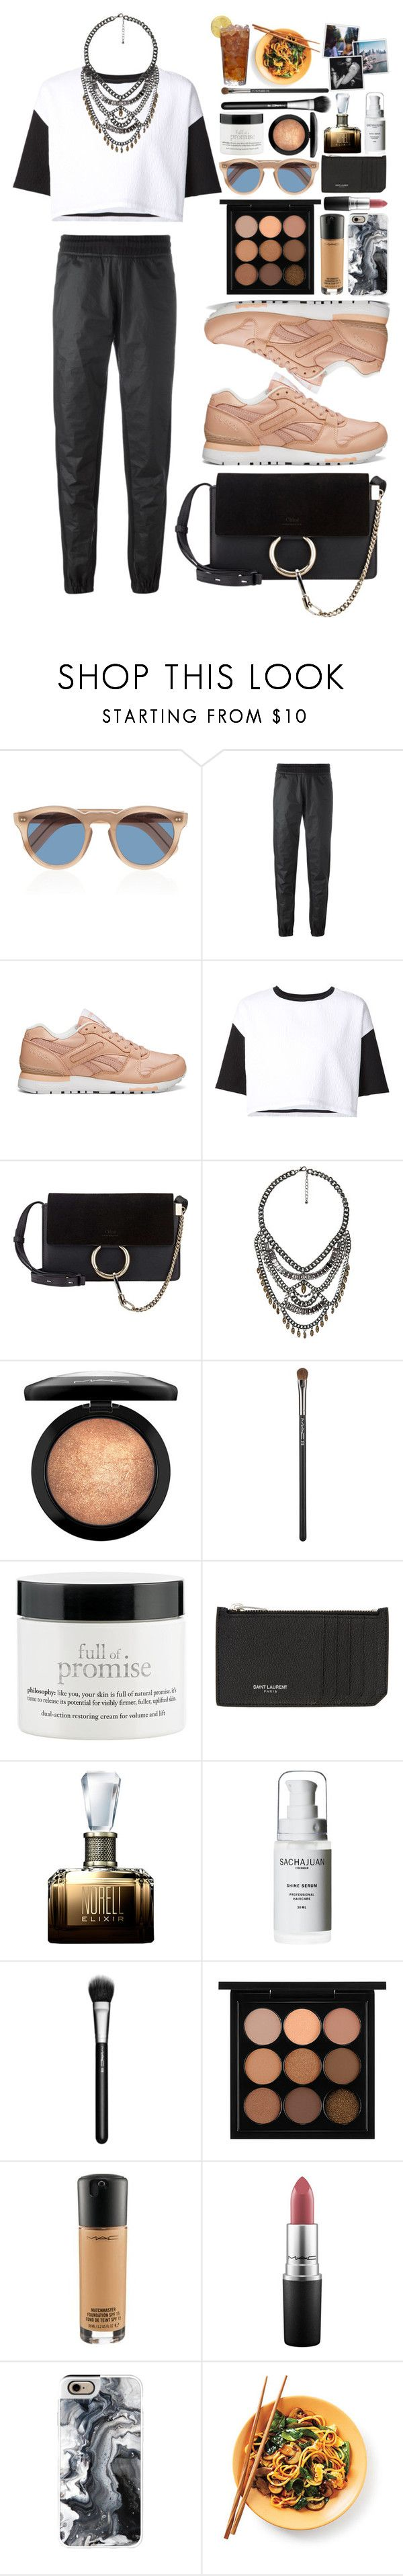 """In Common"" by vanessasimao ❤ liked on Polyvore featuring Cutler and Gross, adidas Originals, Reebok, ComeForBreakfast, Chloé, MANGO, MAC Cosmetics, philosophy, Yves Saint Laurent and Norell"